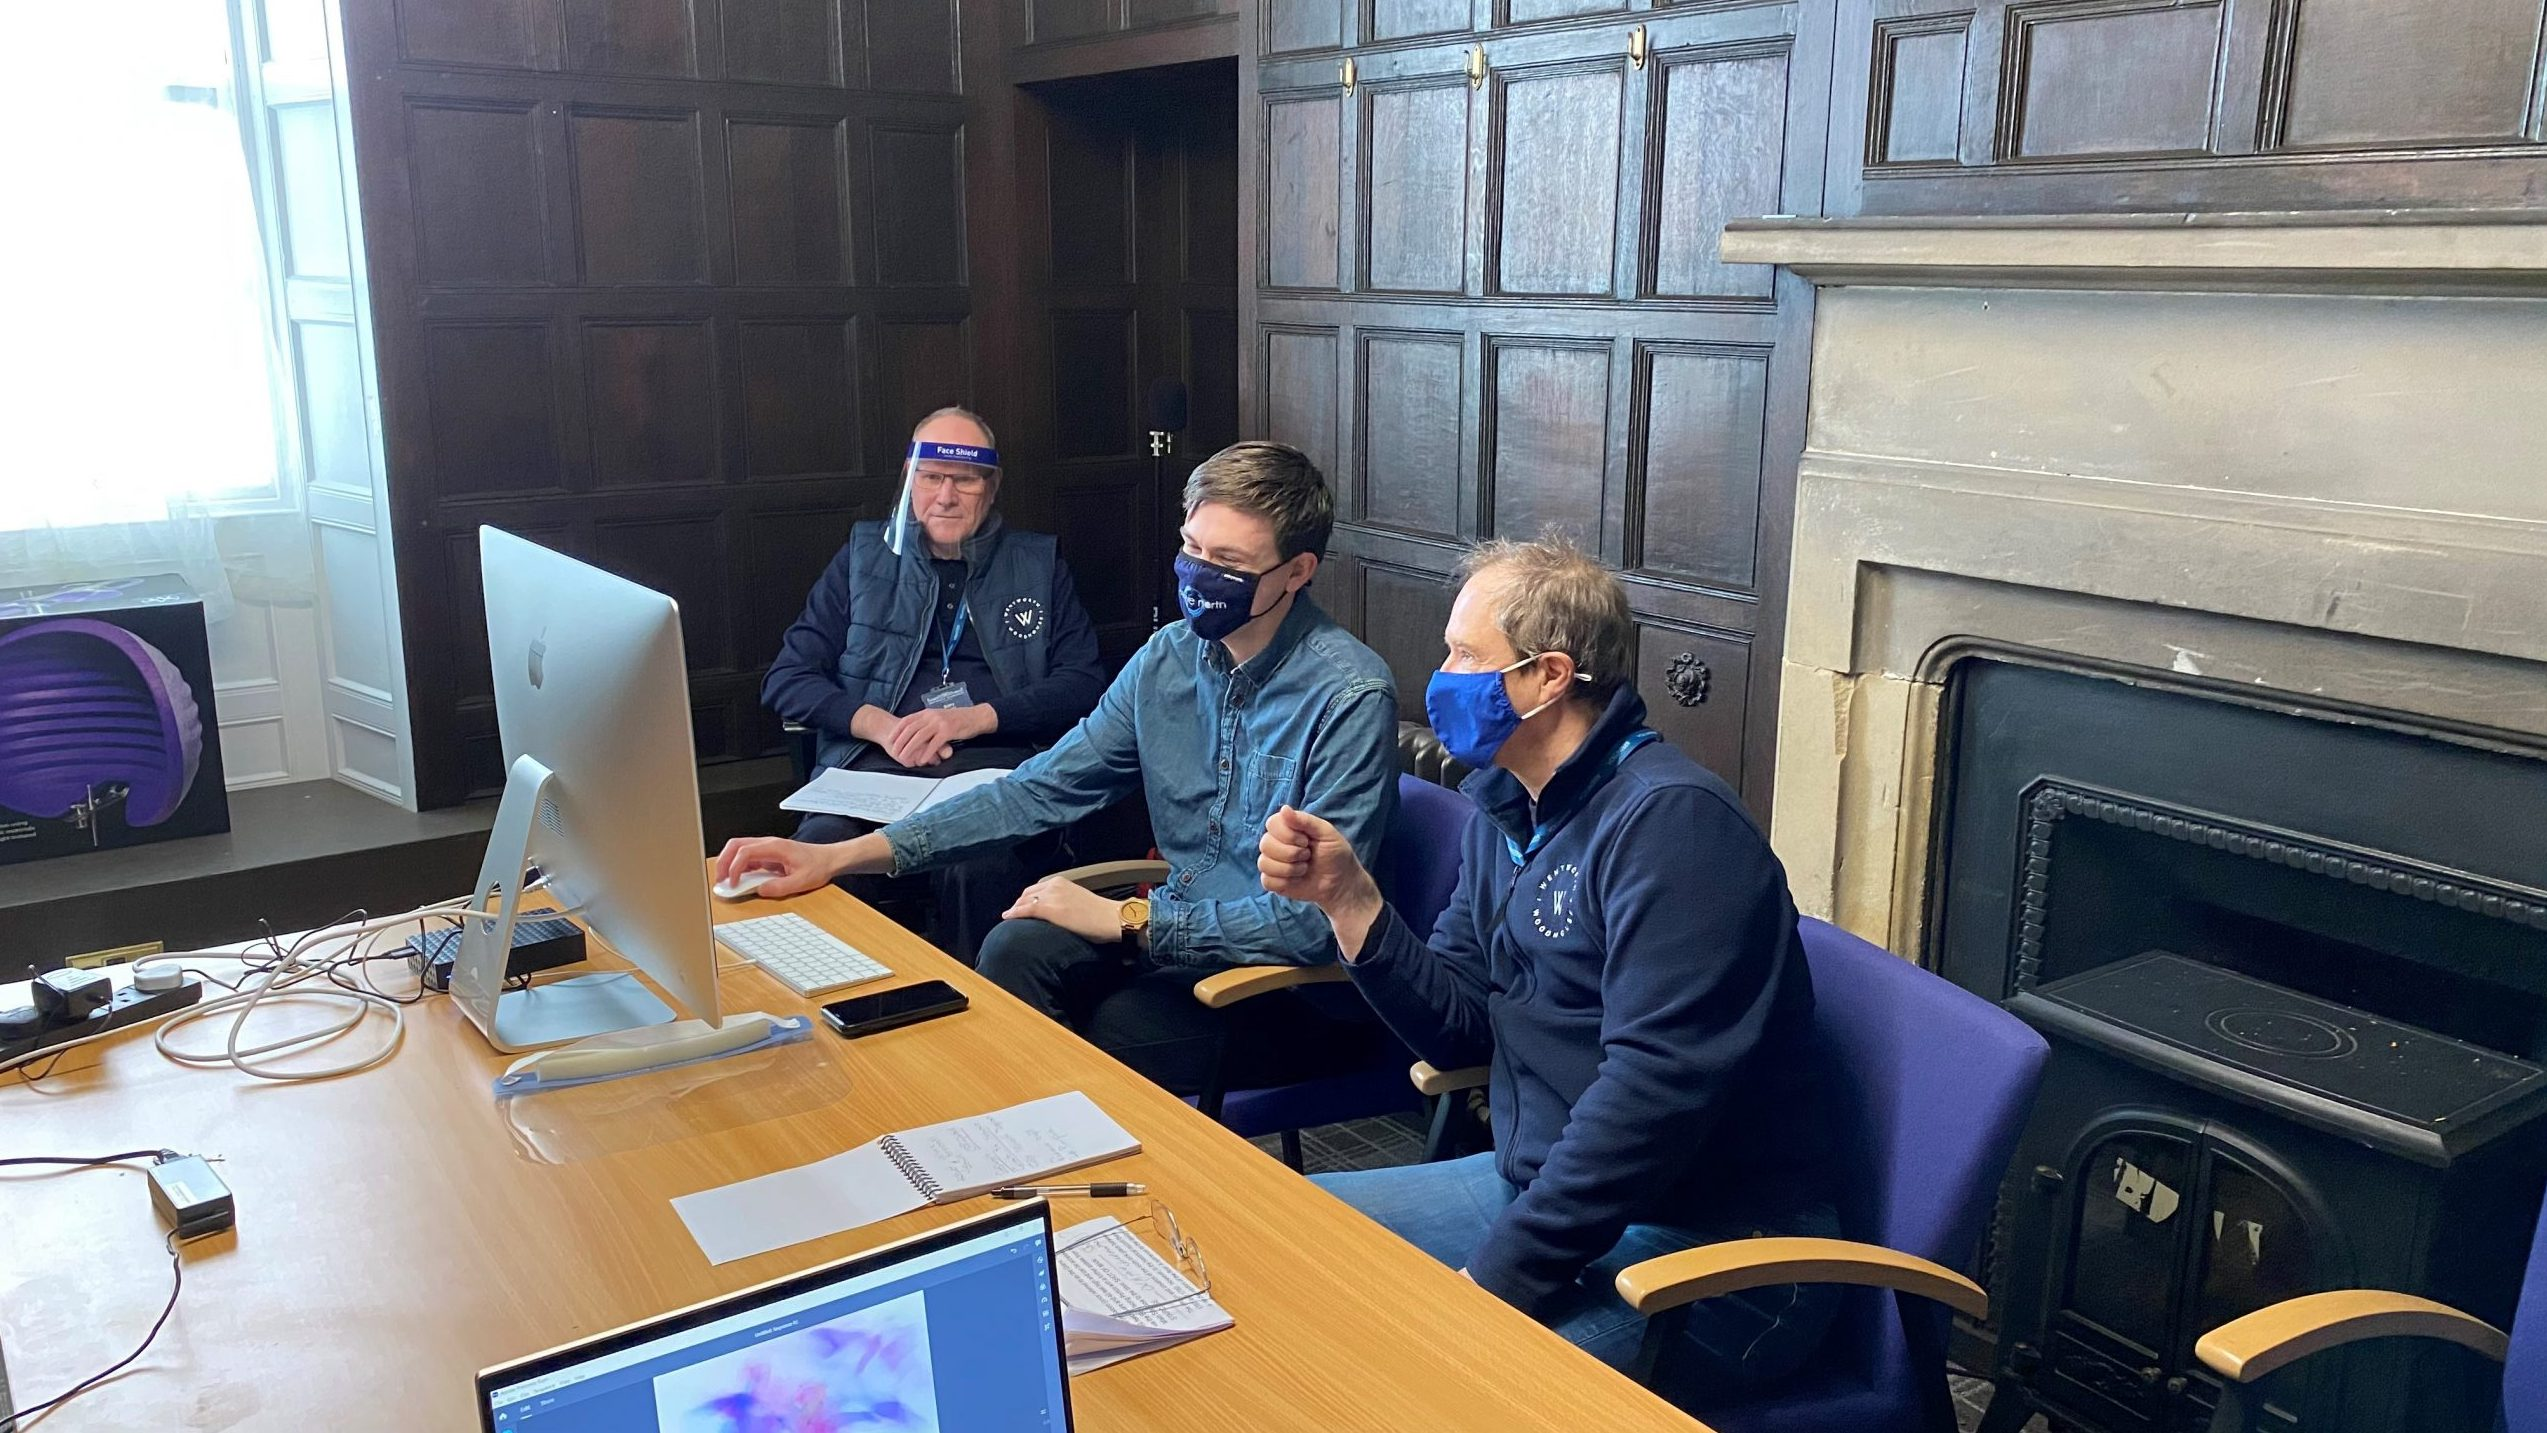 Volunteers at Wentworth Woodhouse learn how to create digital films